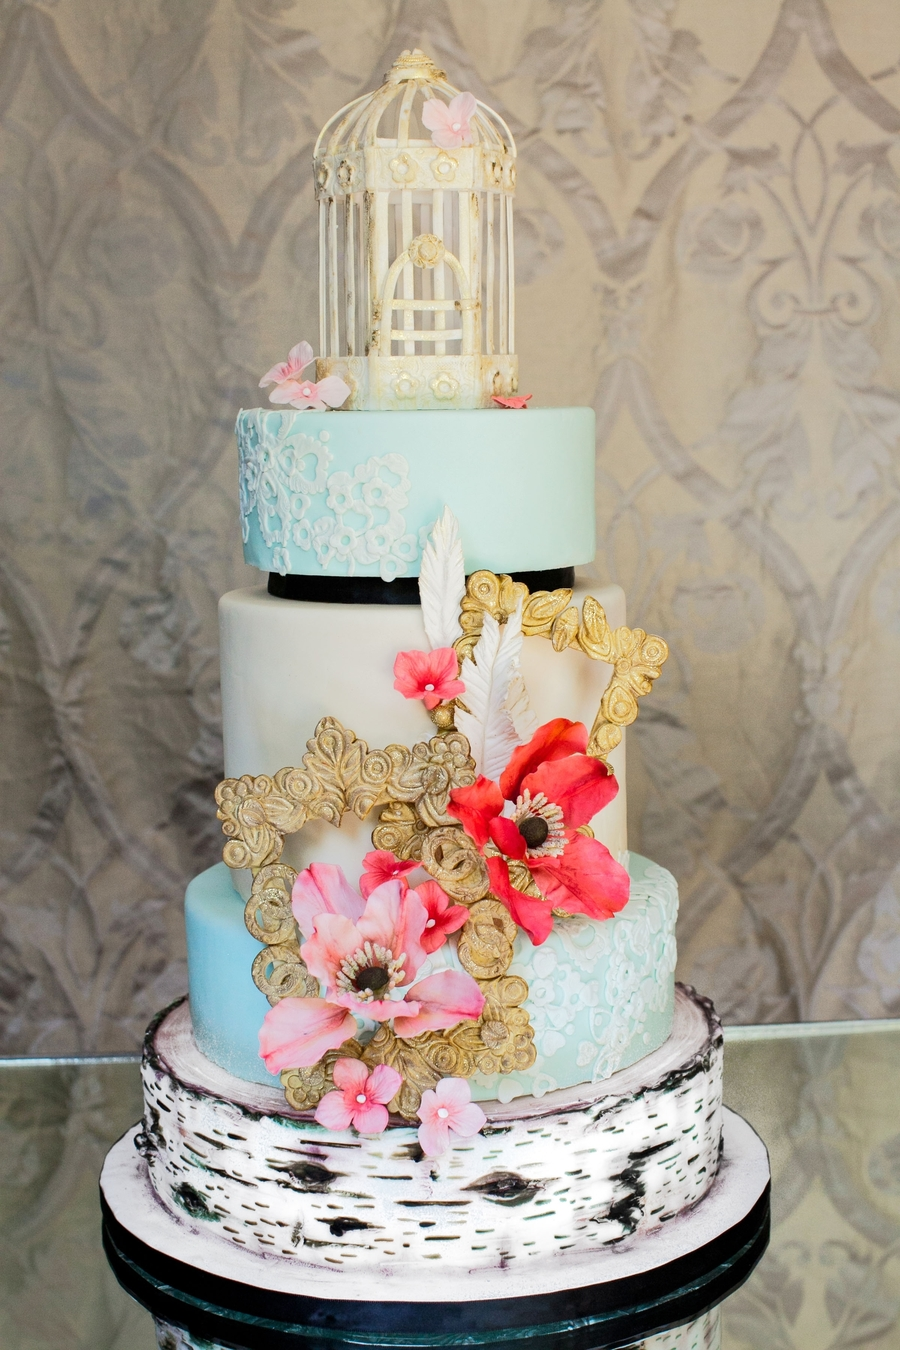 Natural Chic on Cake Central